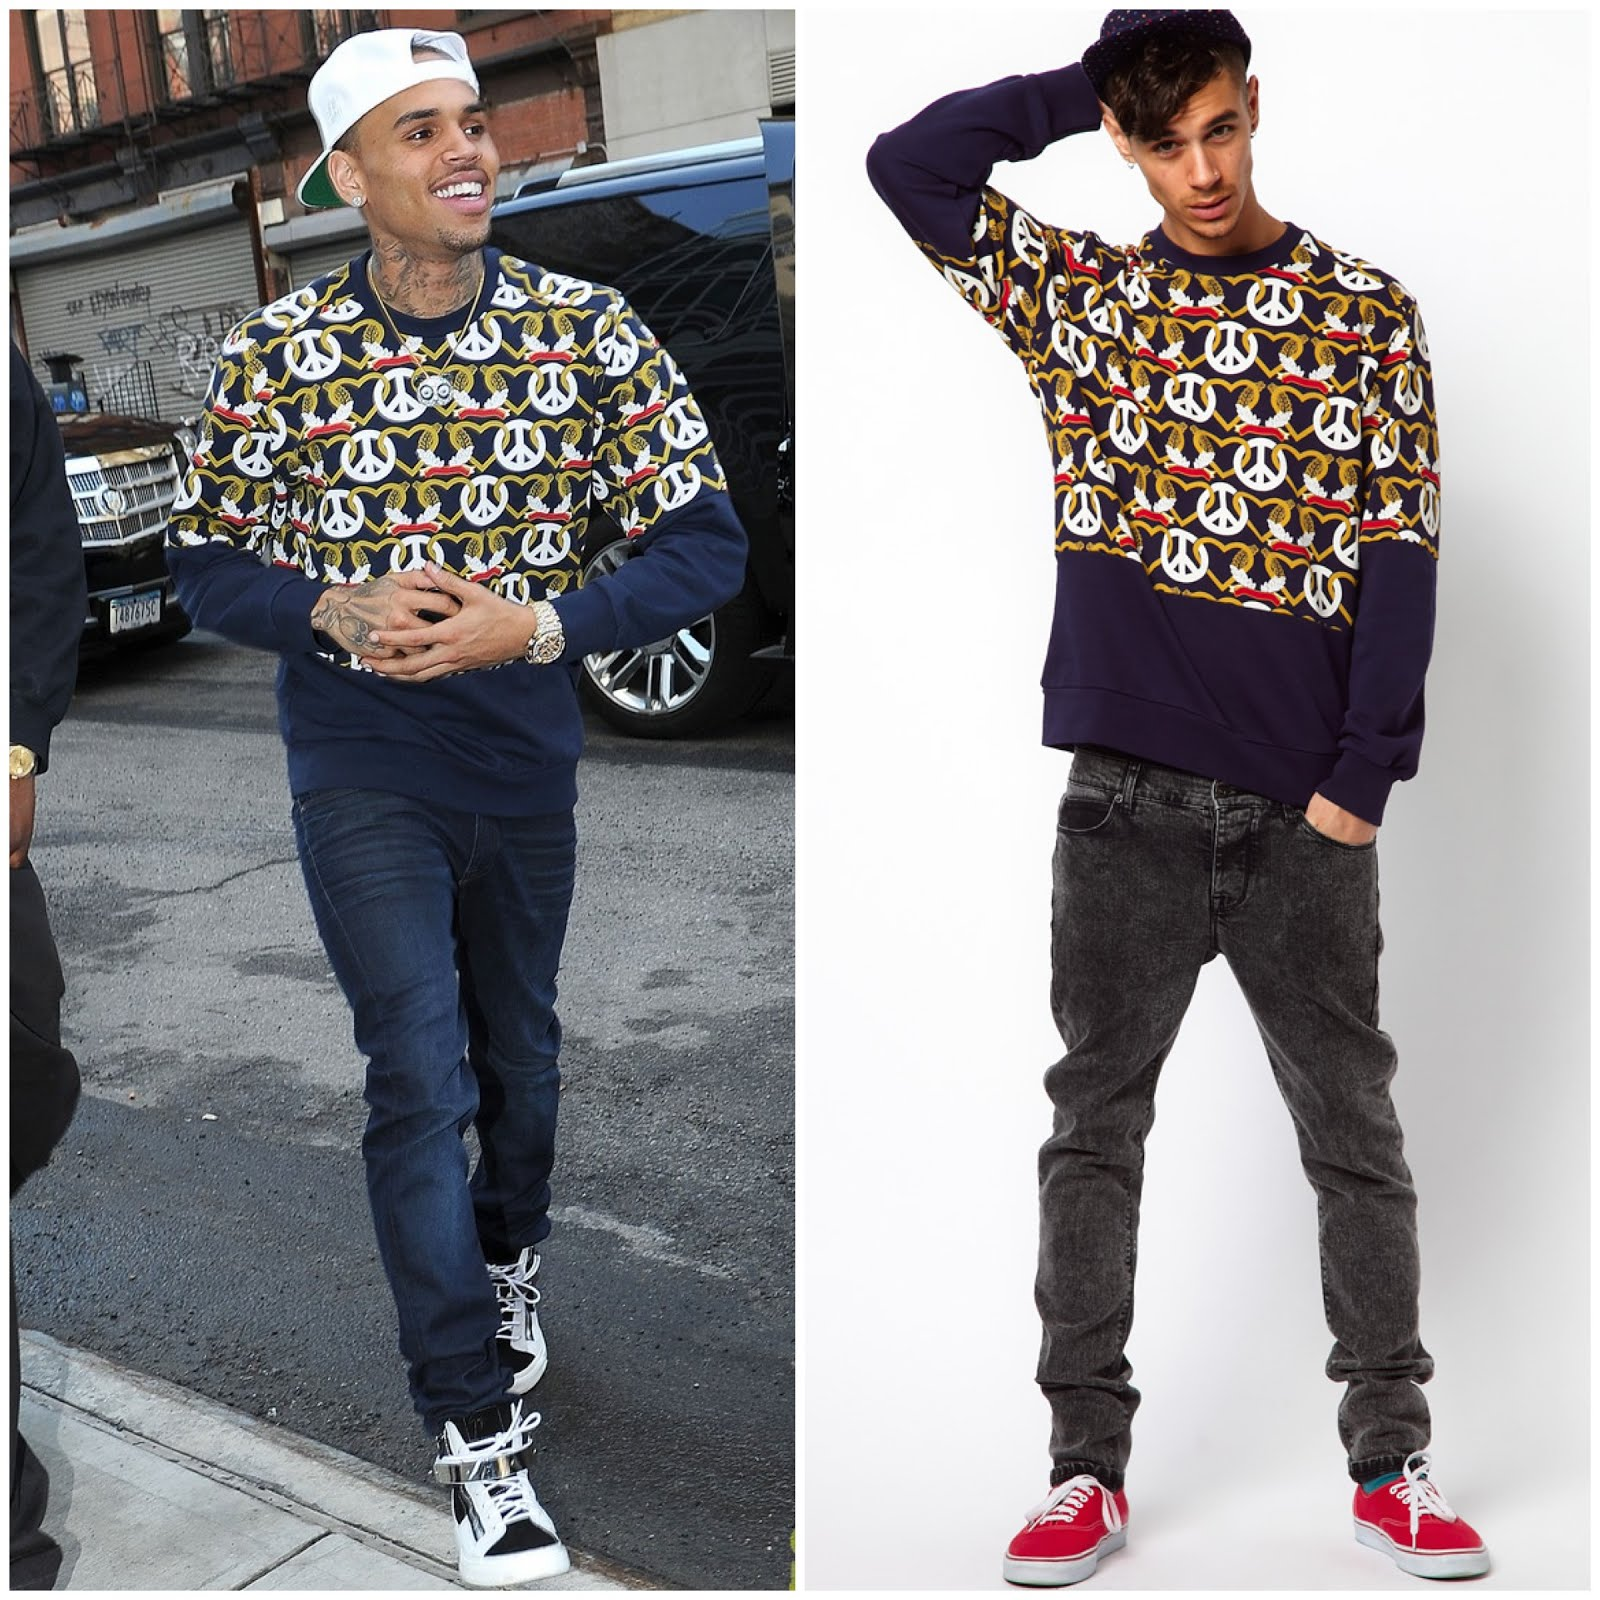 00O00 Menswear Blog Chris Brown in Christopher Shannon Kidda sweatshirt from ASOS - New York city March 2013